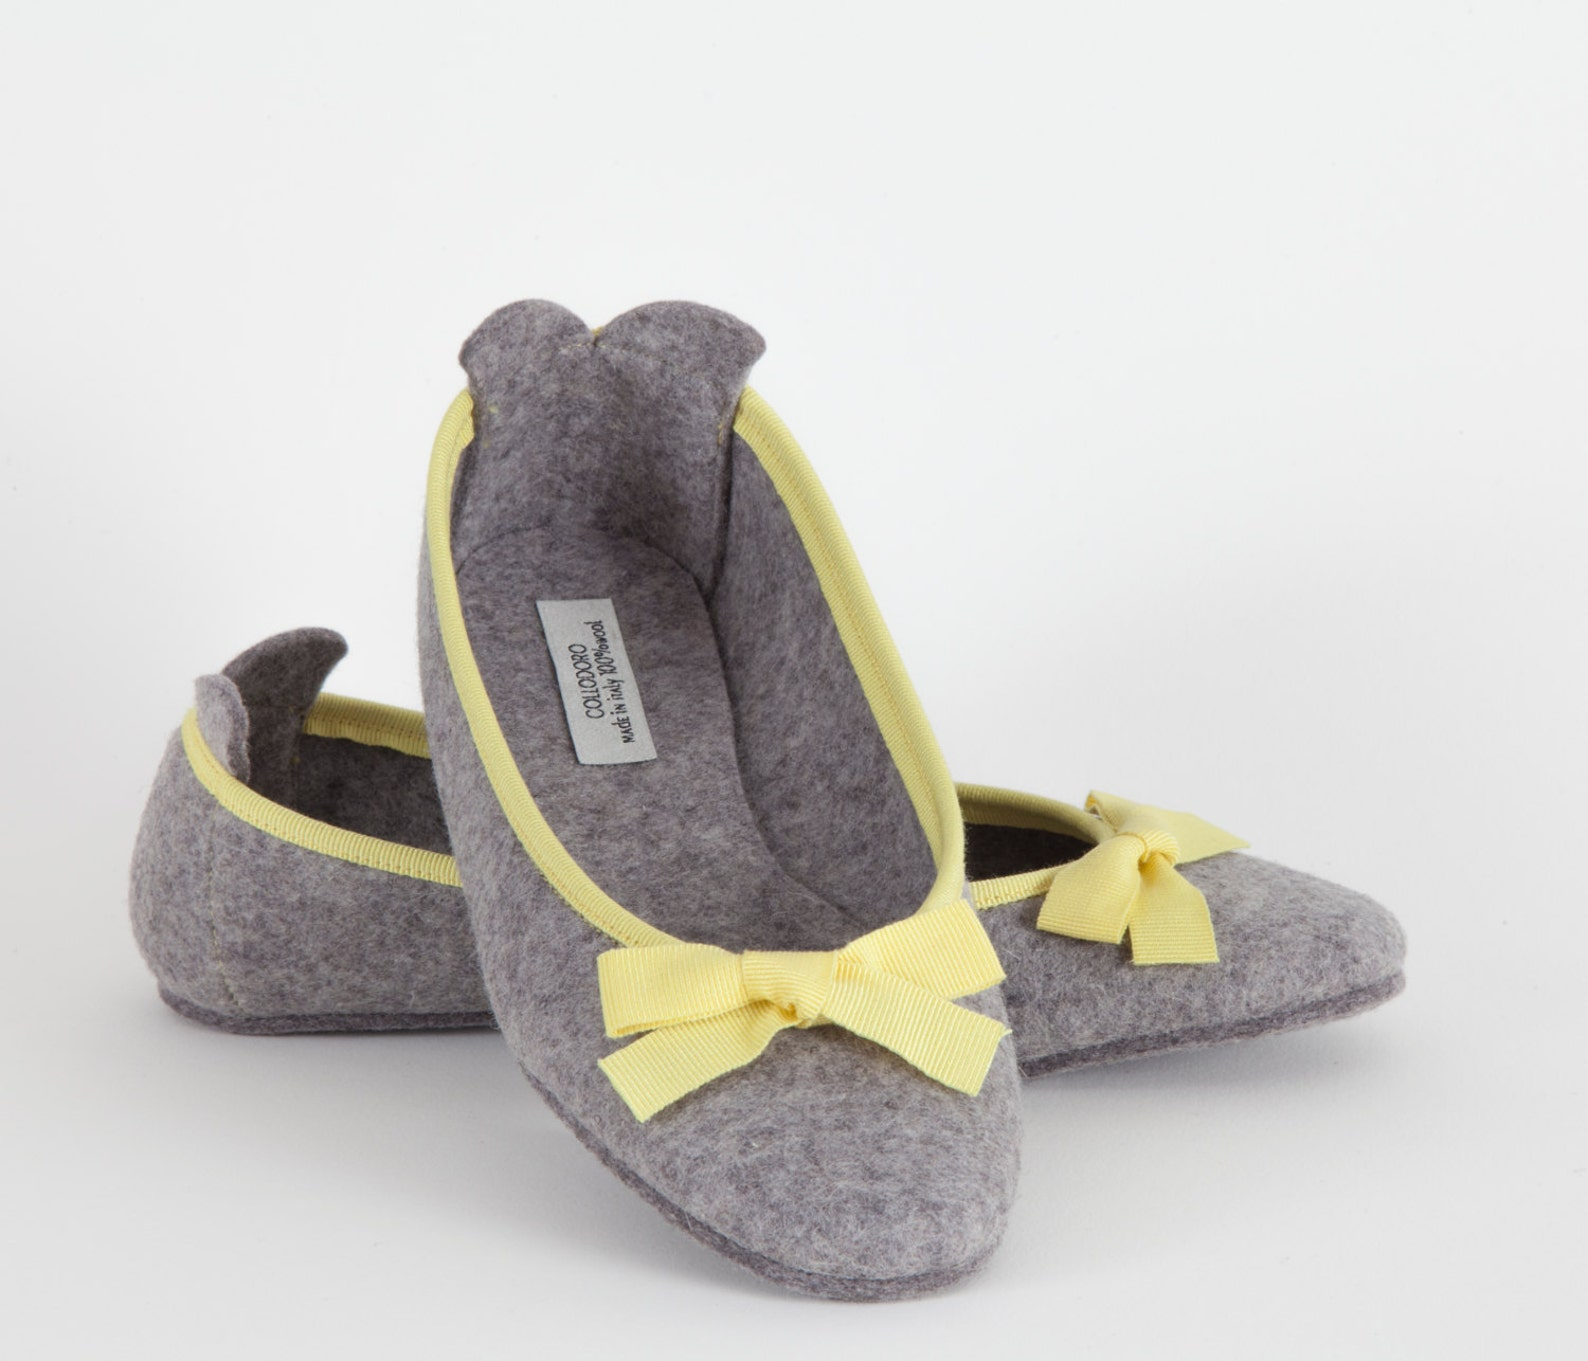 women's slippers- gray ballet flat- merino wool felt- handmade in italy- grosgrain ribbon & bow- size eu 38